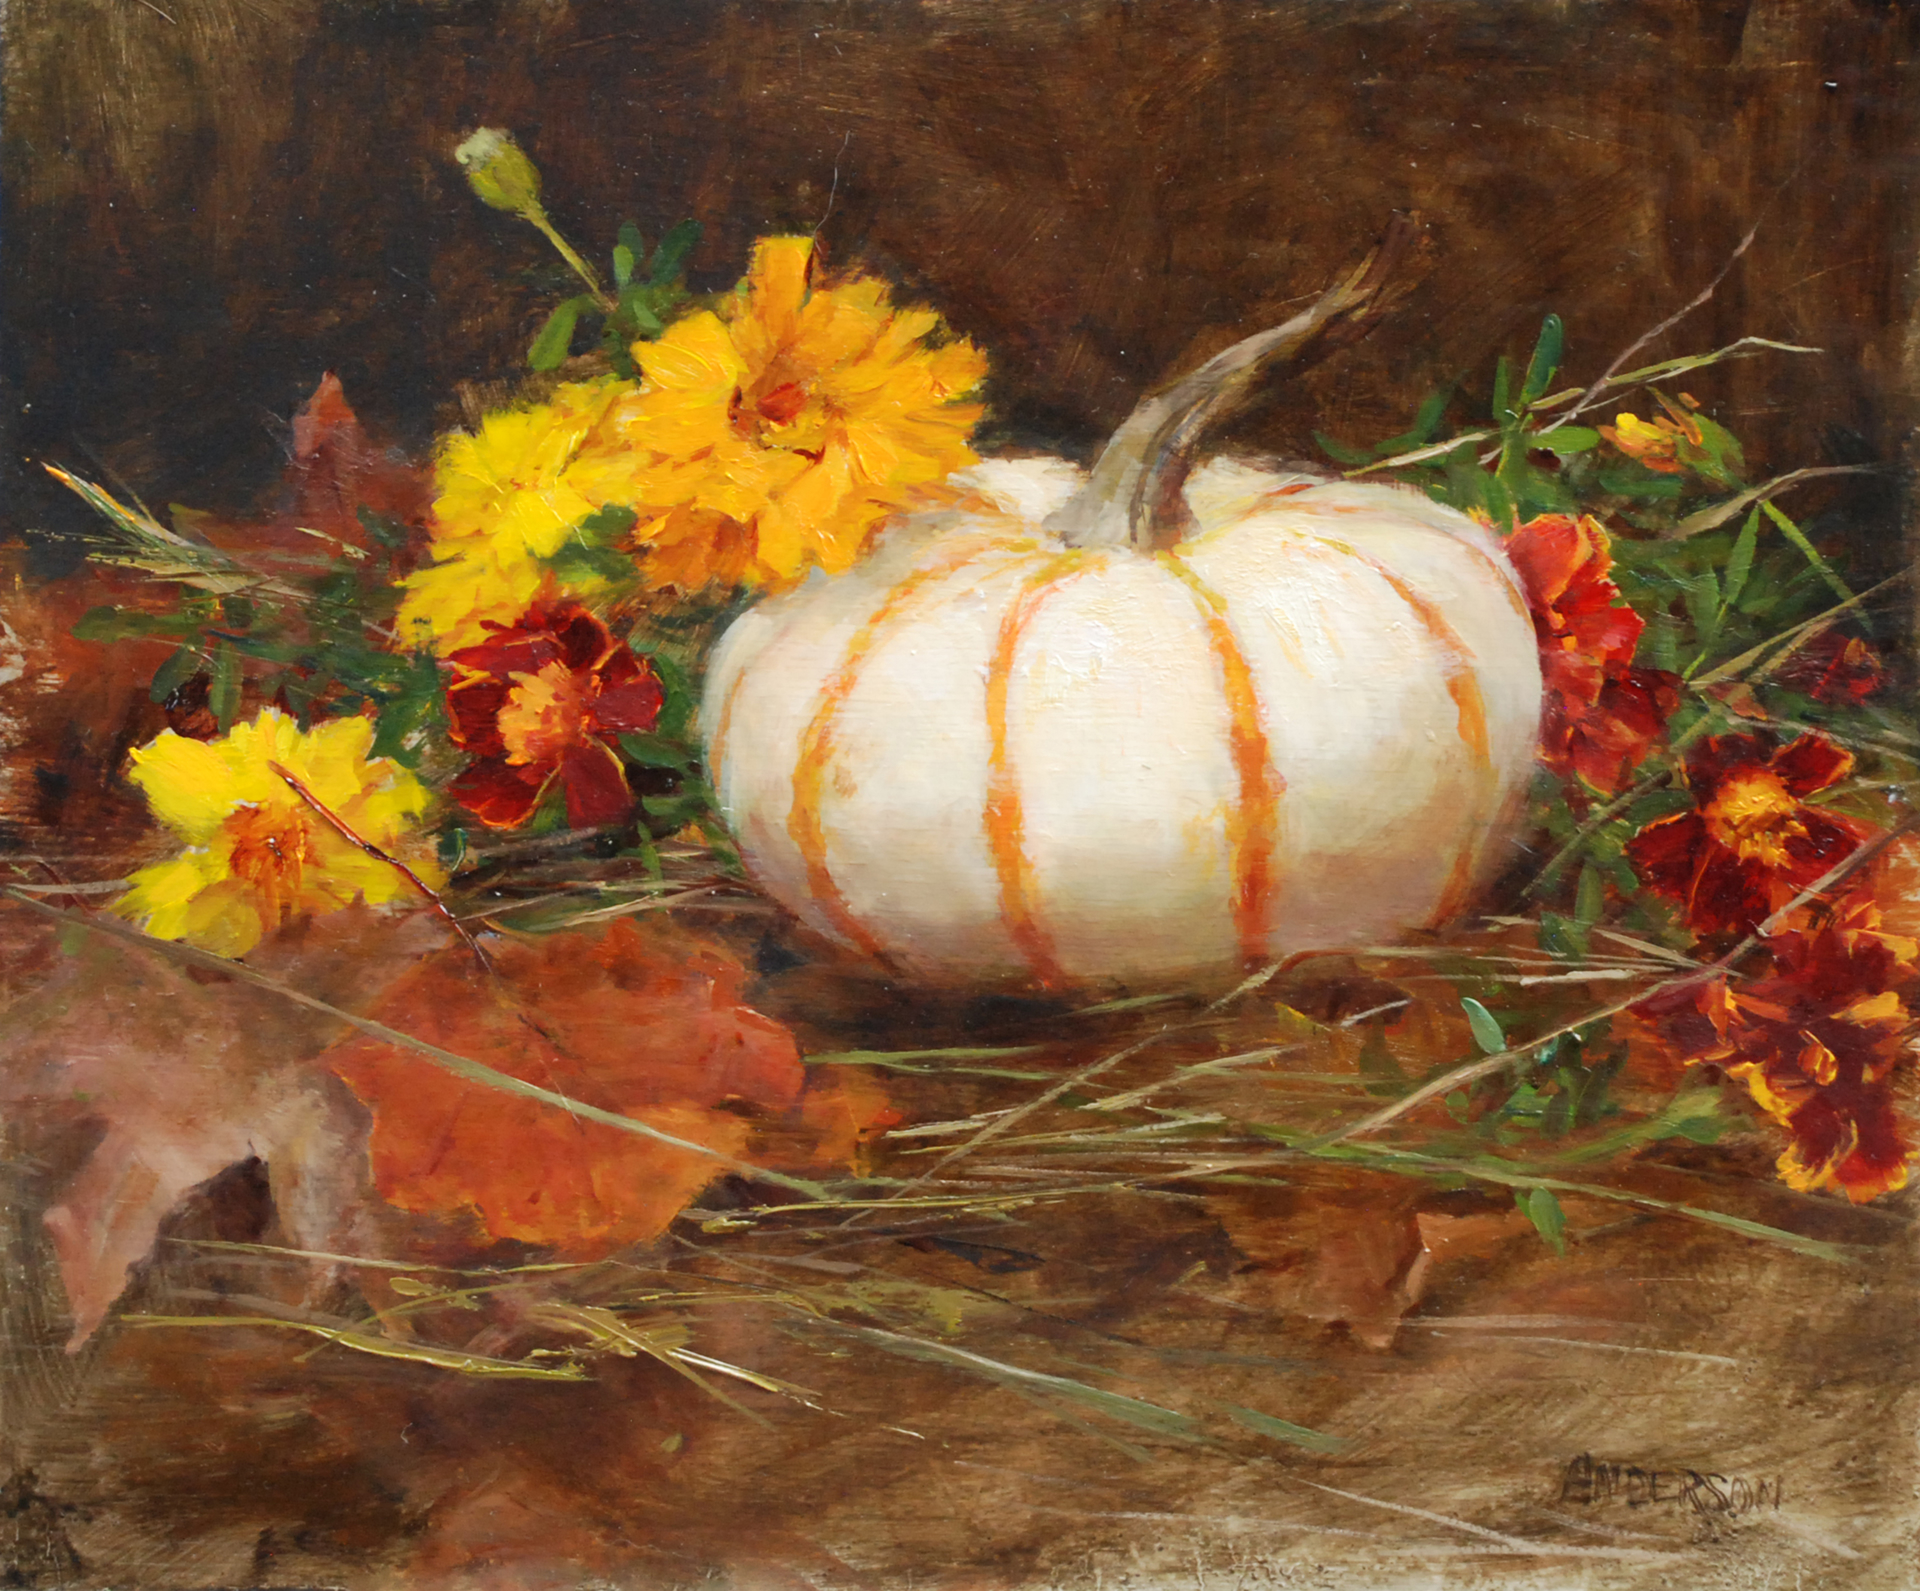 White Pumpkins with Marigolds by Kathy Anderson